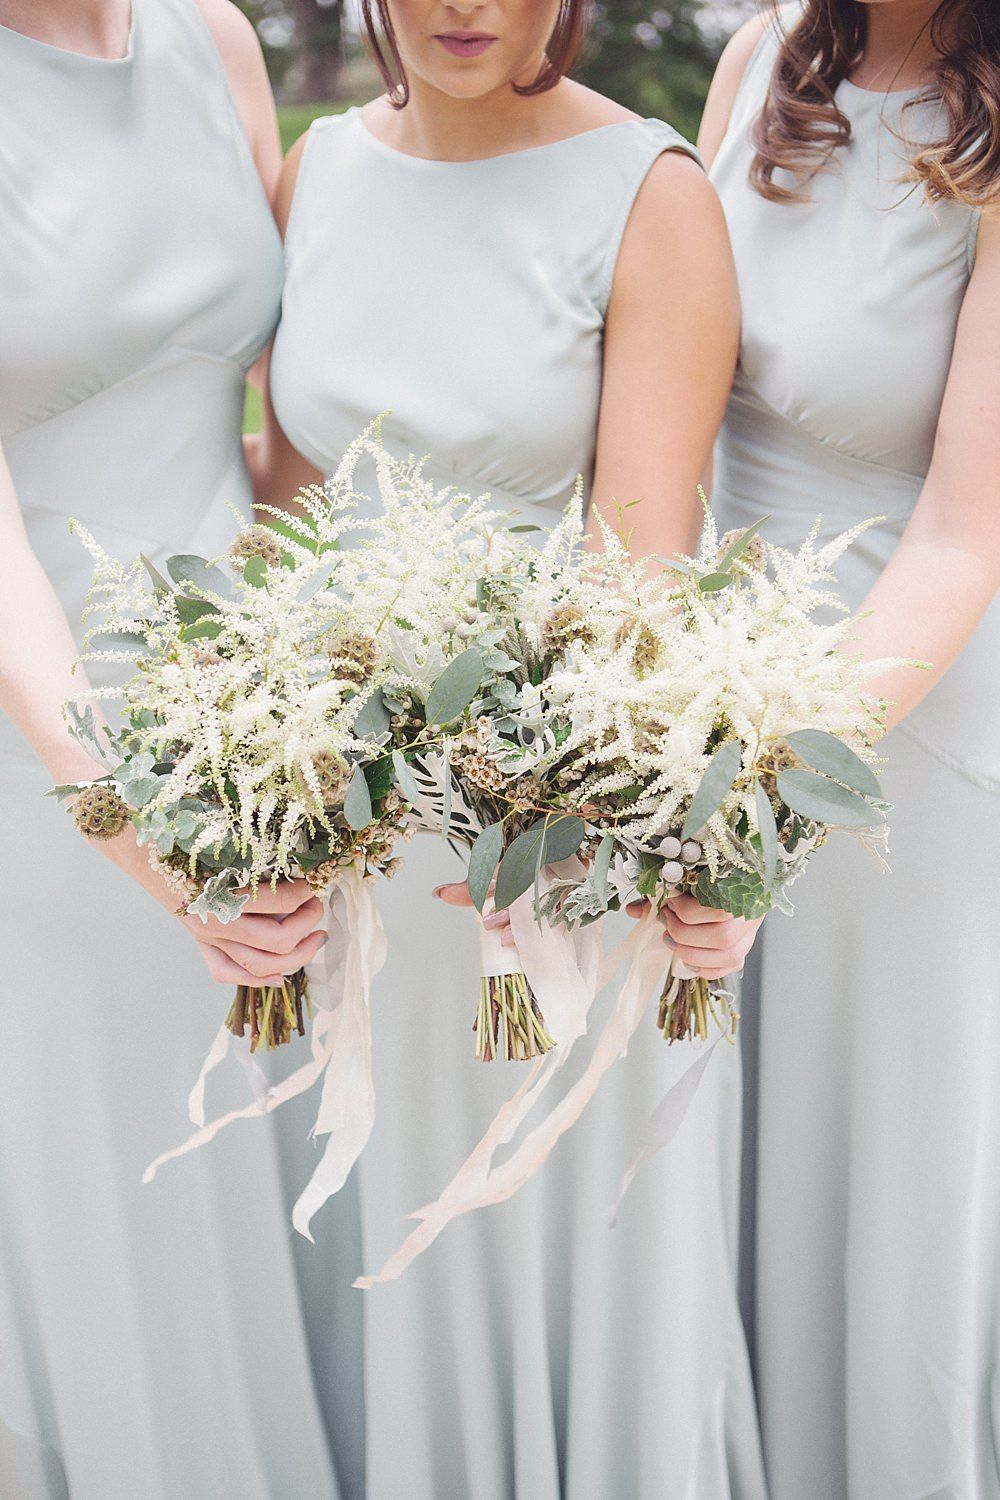 Elegant Pale Green & White Rustic Wedding at Wasing Park